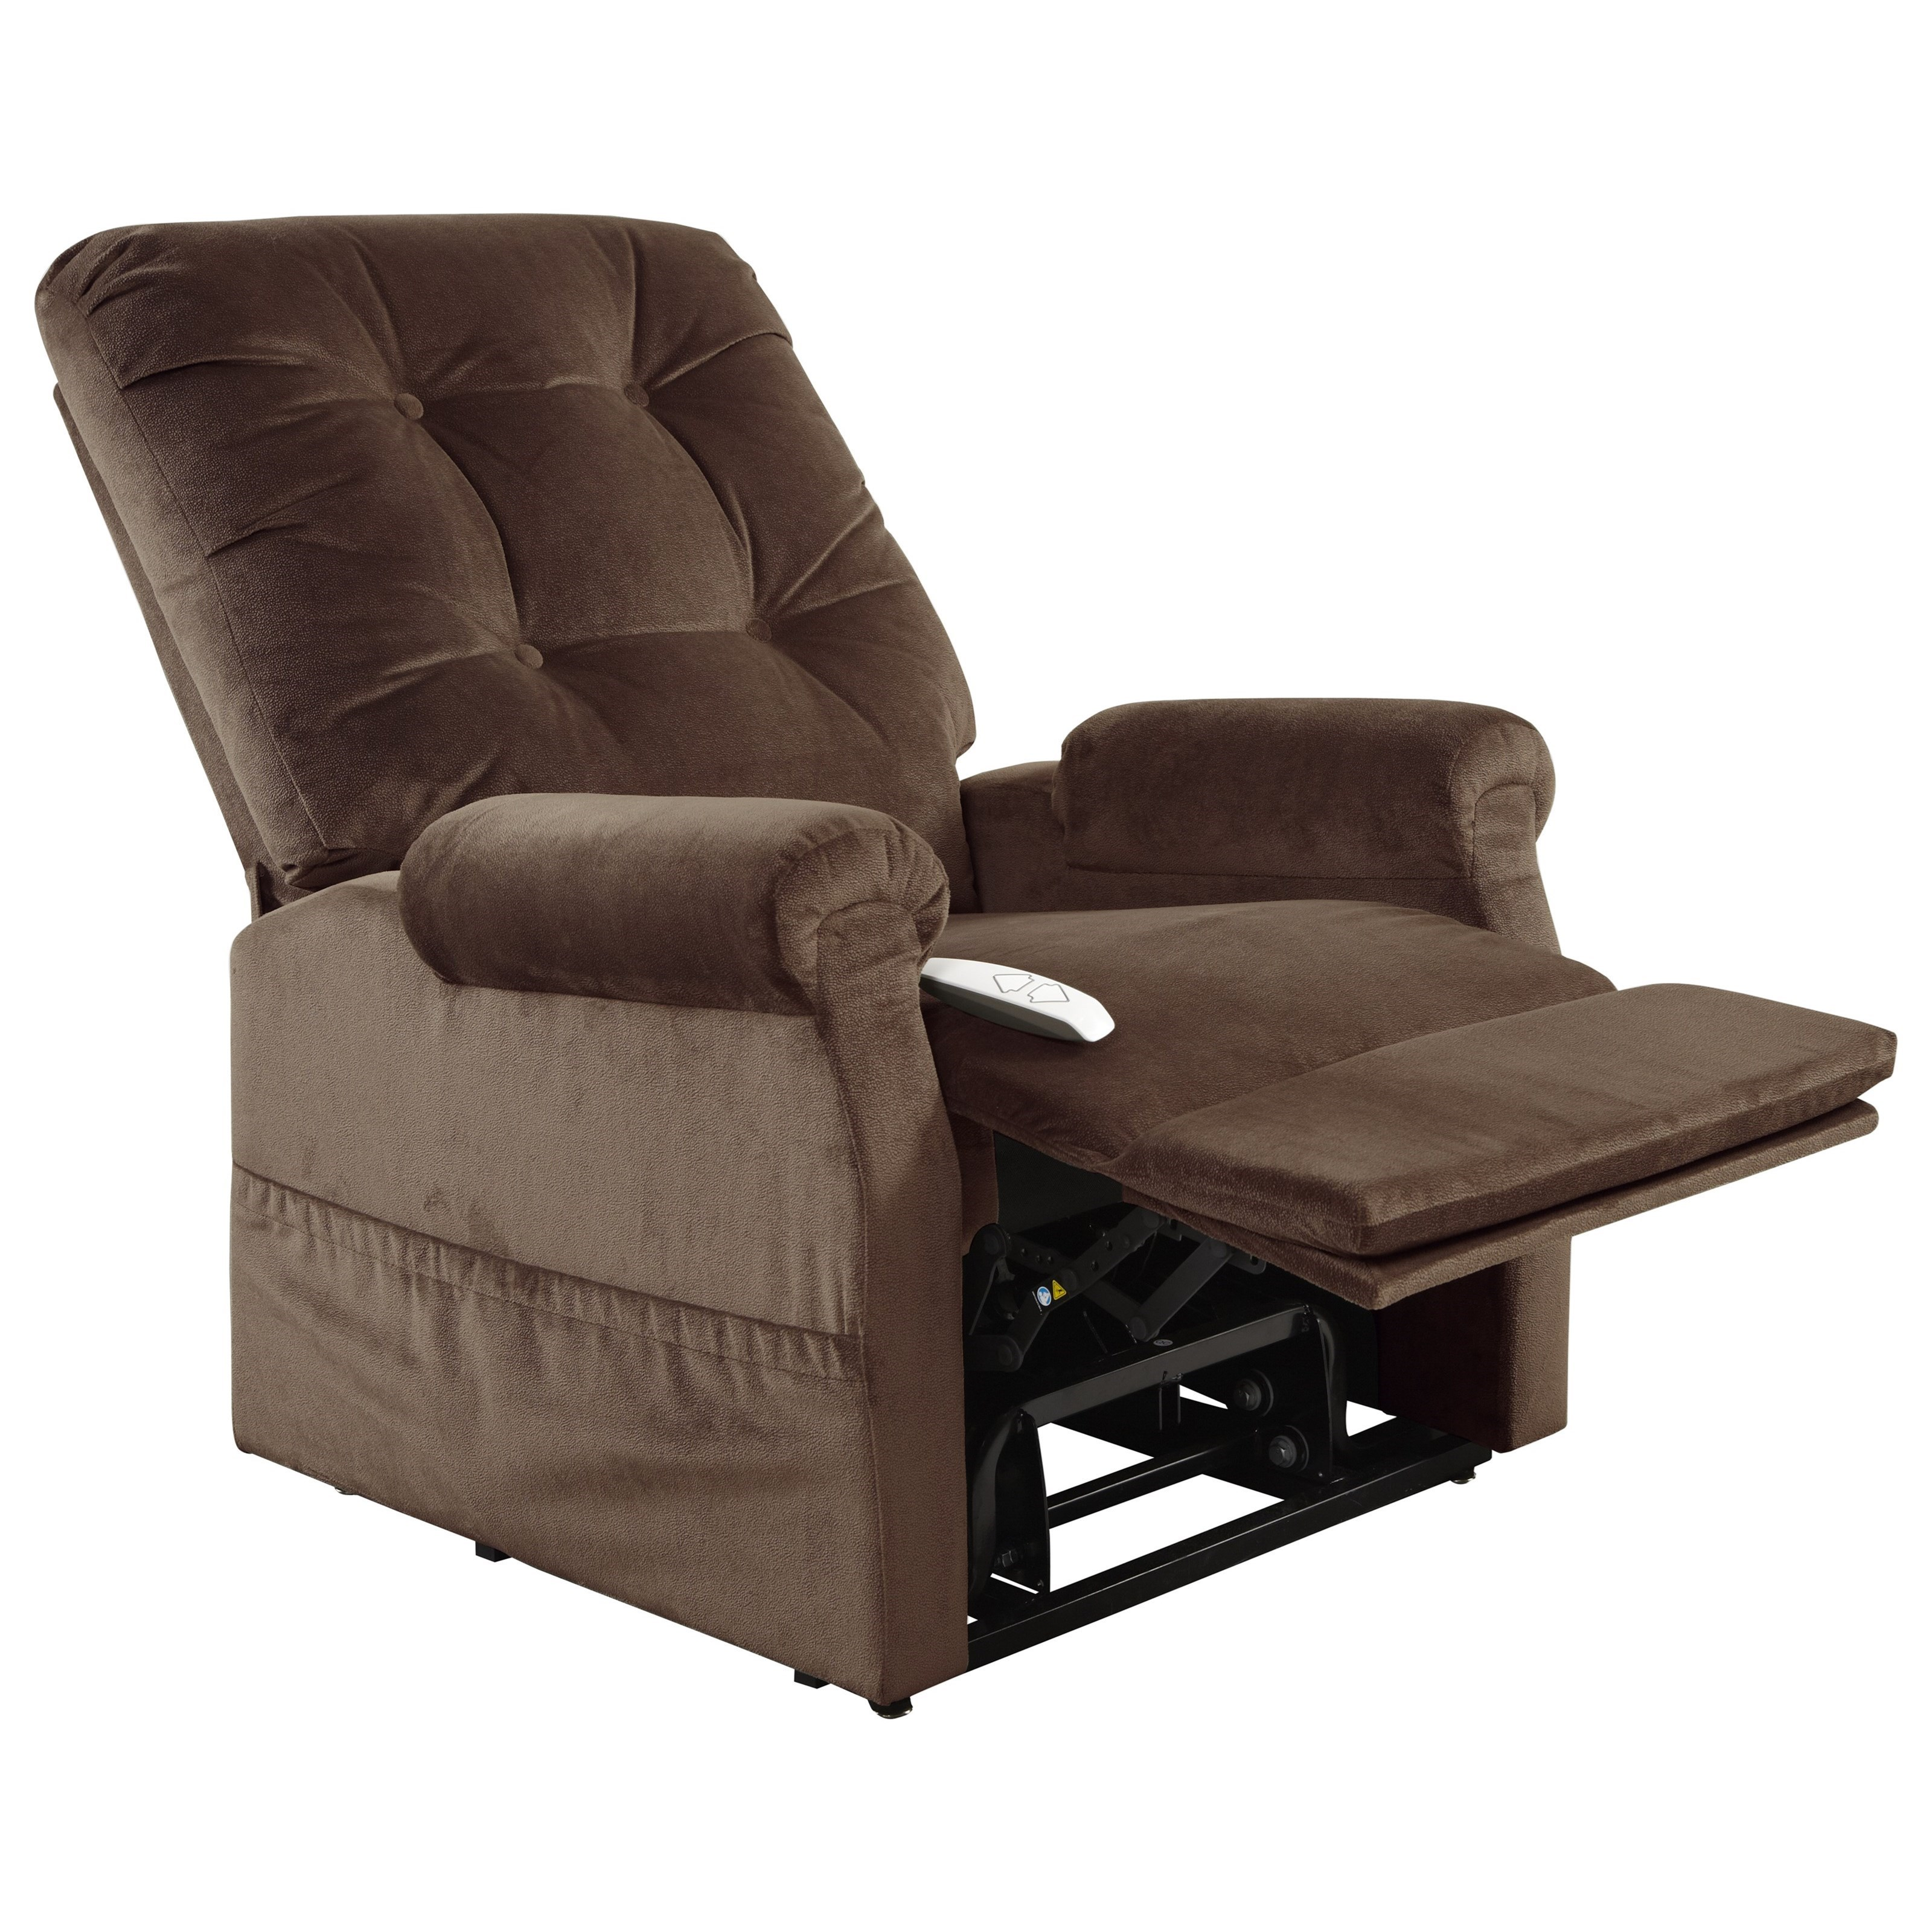 ultimate power recliner lift chairs 3 position reclining lift chair vandrie home furnishings. Black Bedroom Furniture Sets. Home Design Ideas